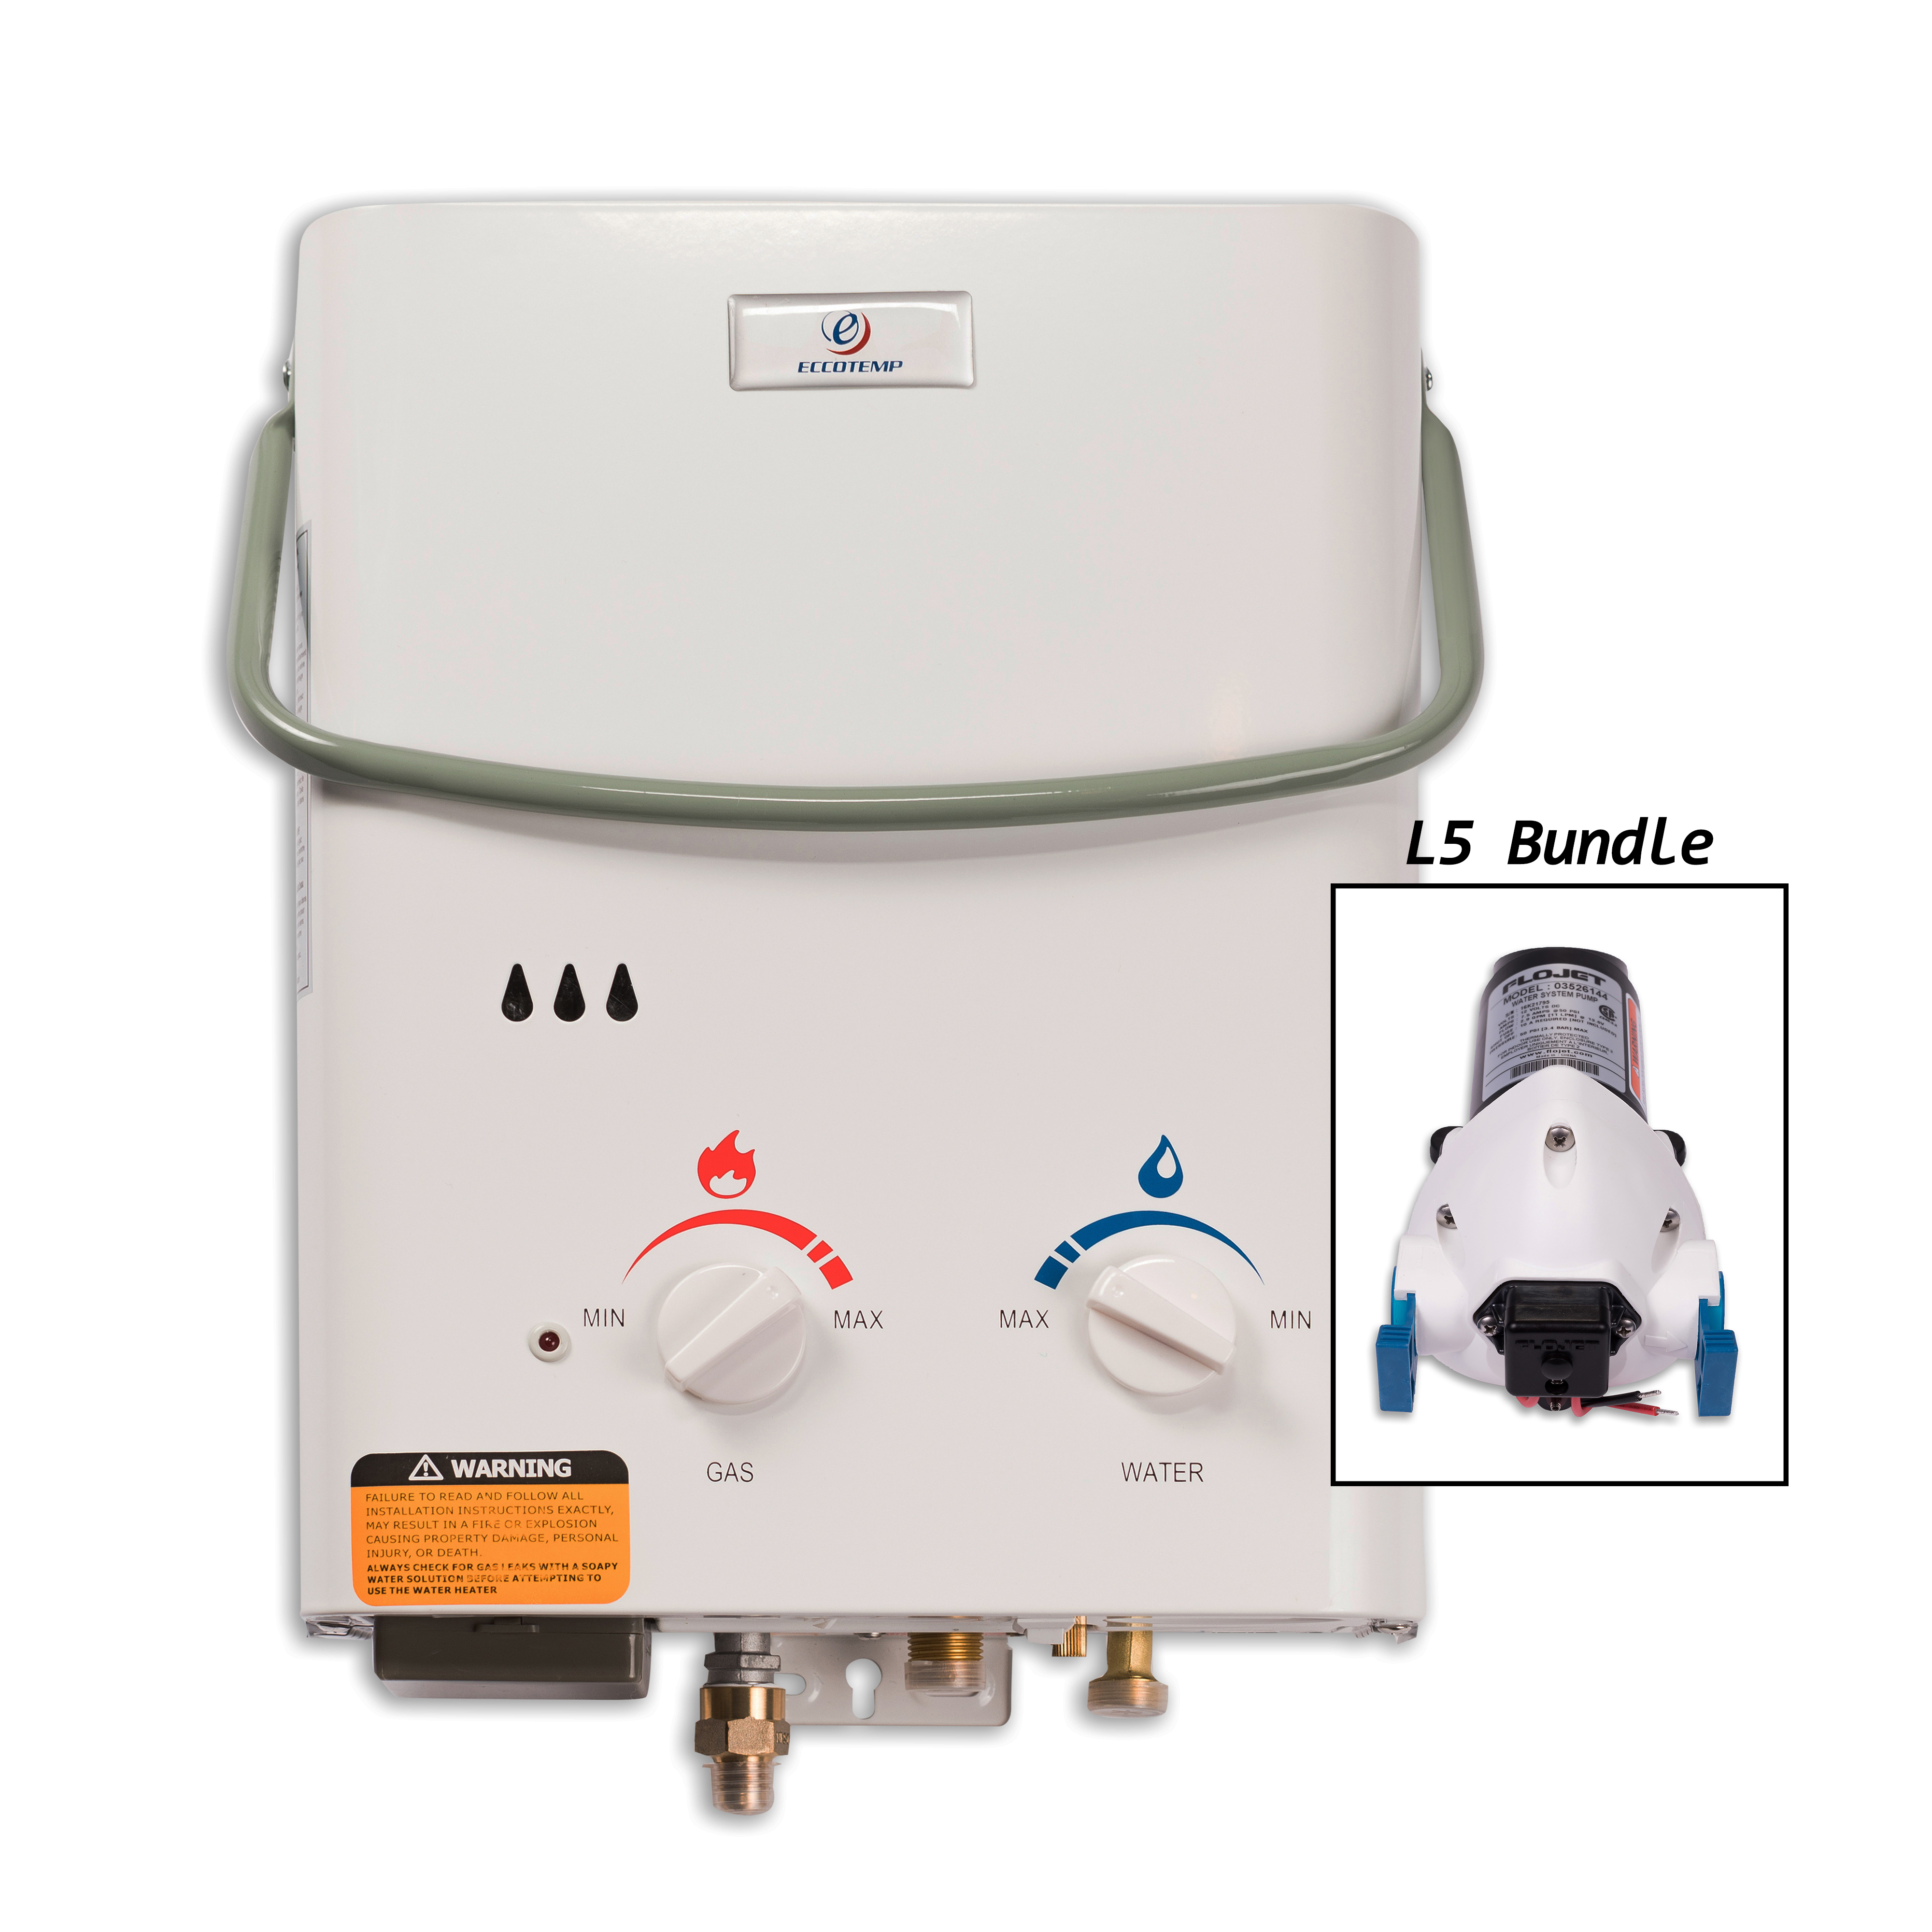 Eccotemp L5 Portable Outdoor Tankless Water Heater with Flojet Pump